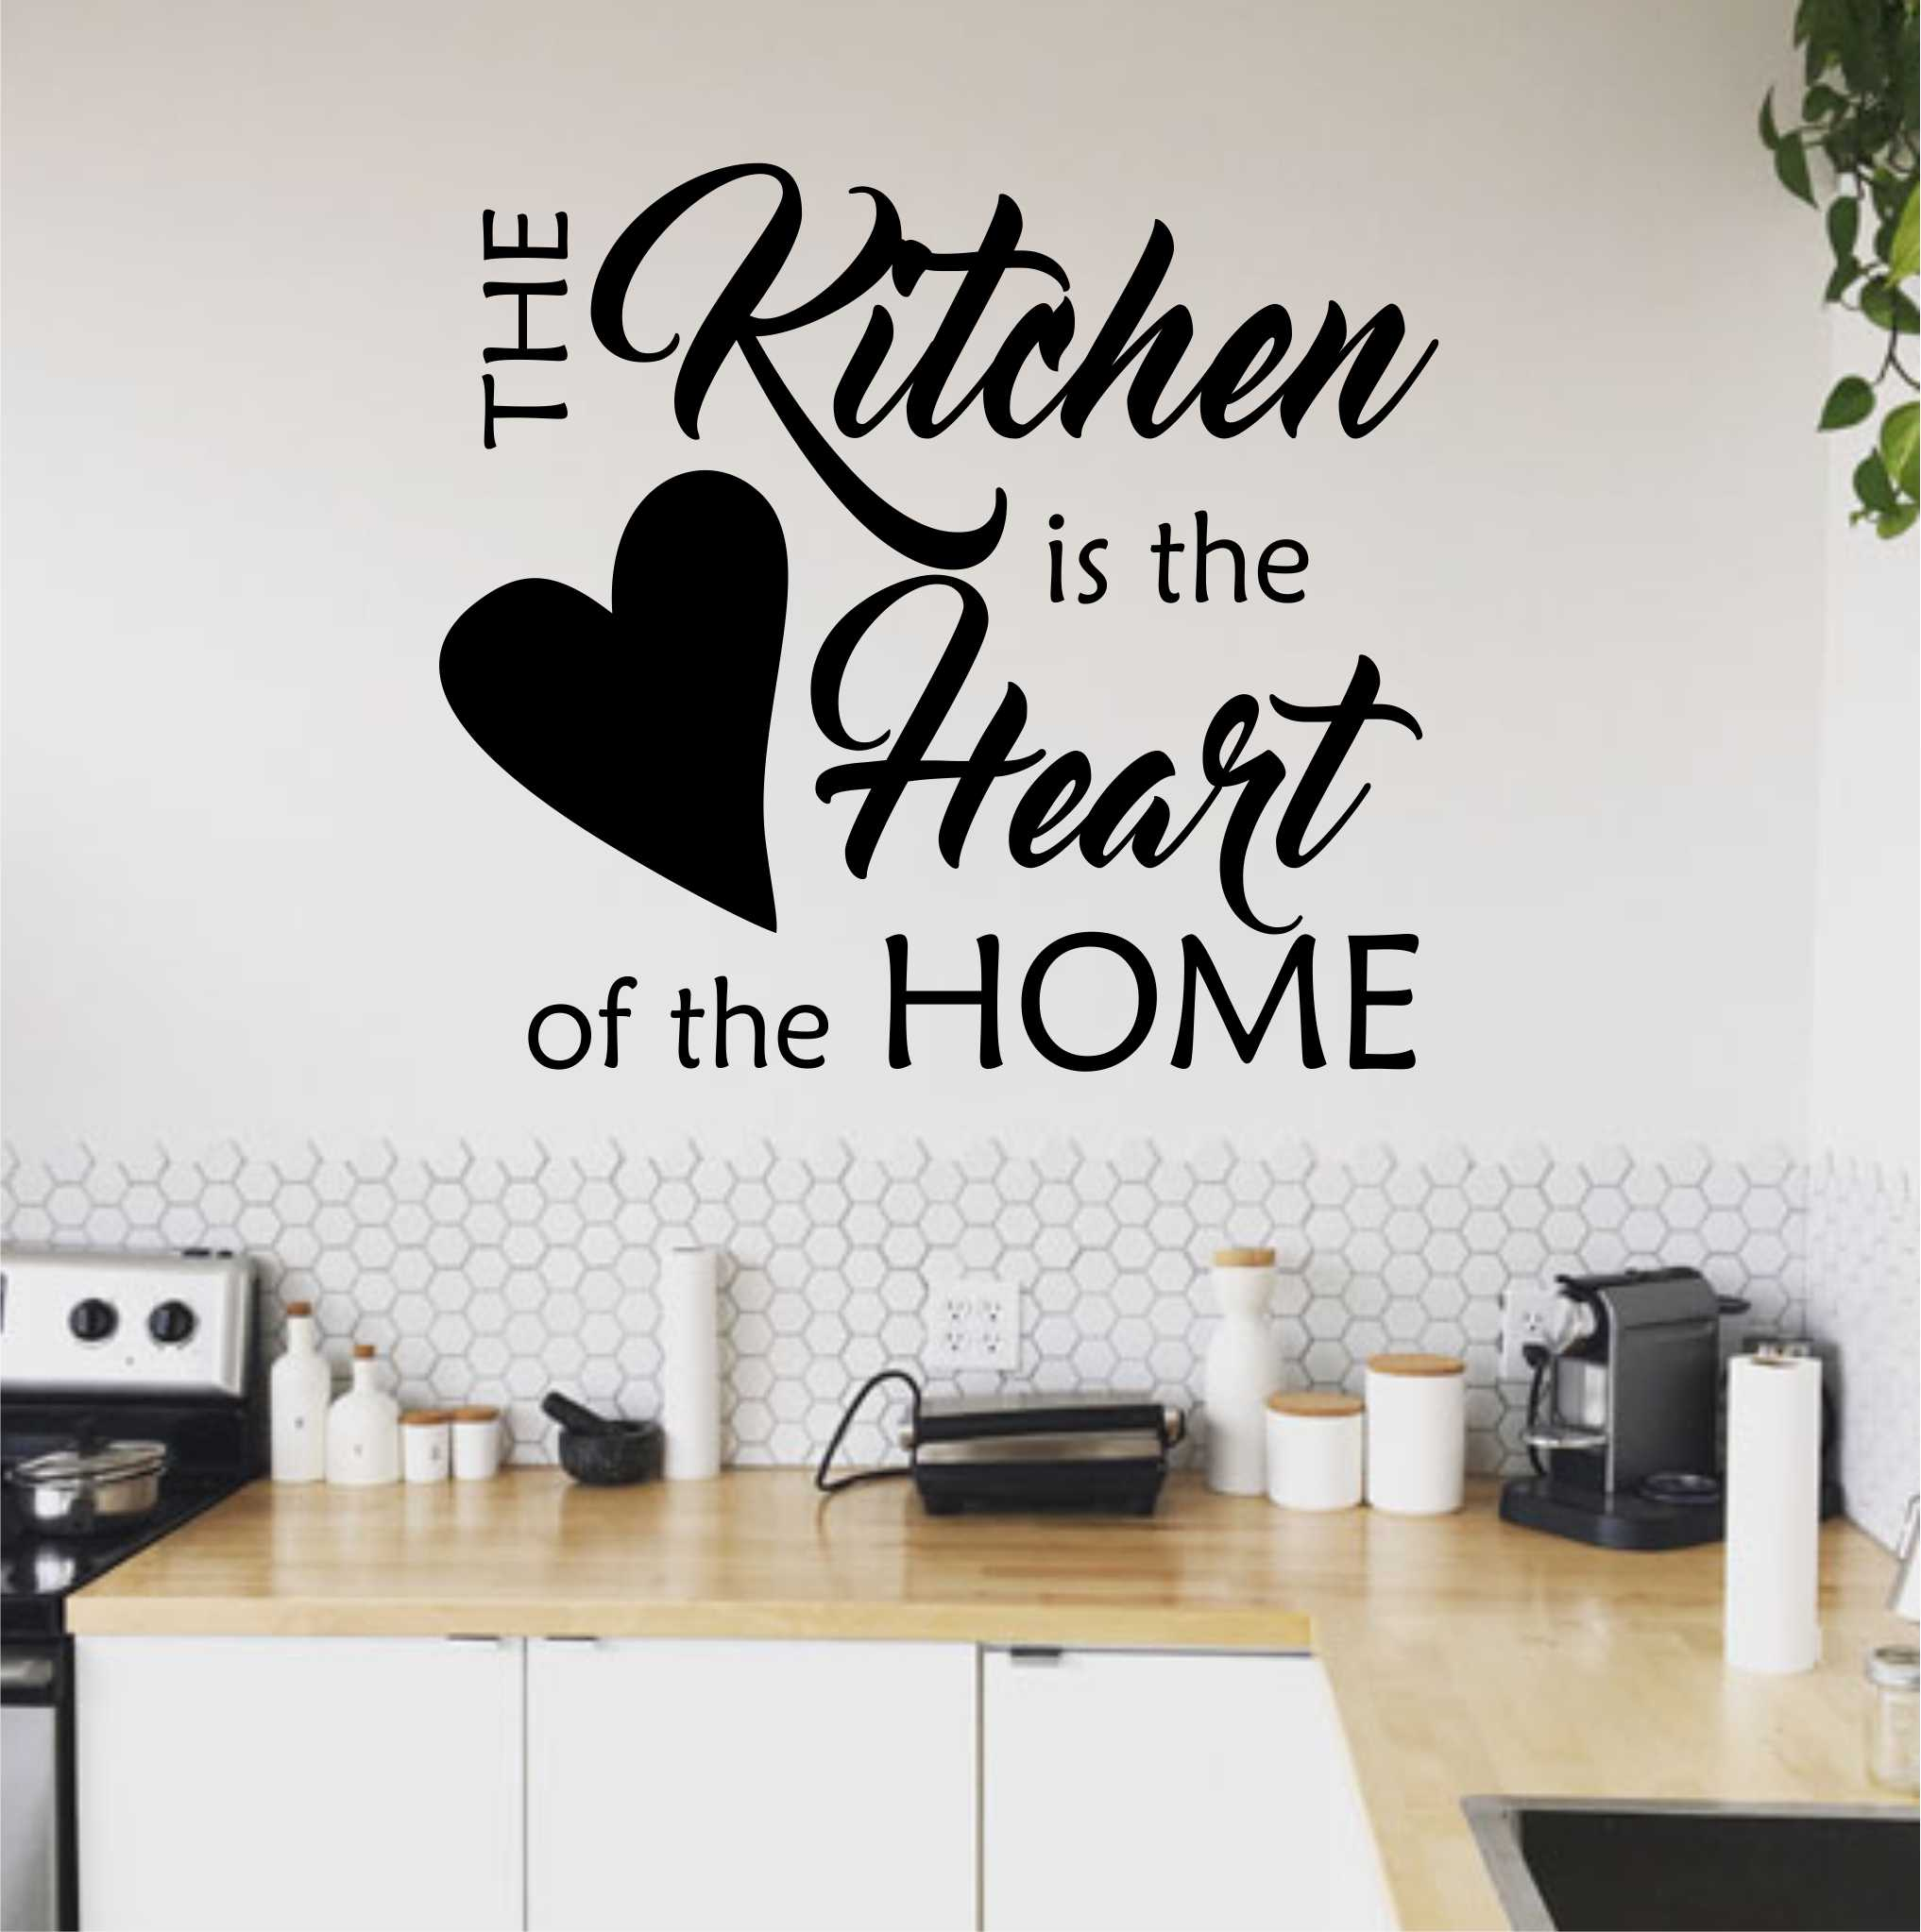 Wall Decal Kitchen Heart Home Vinyl Lettering